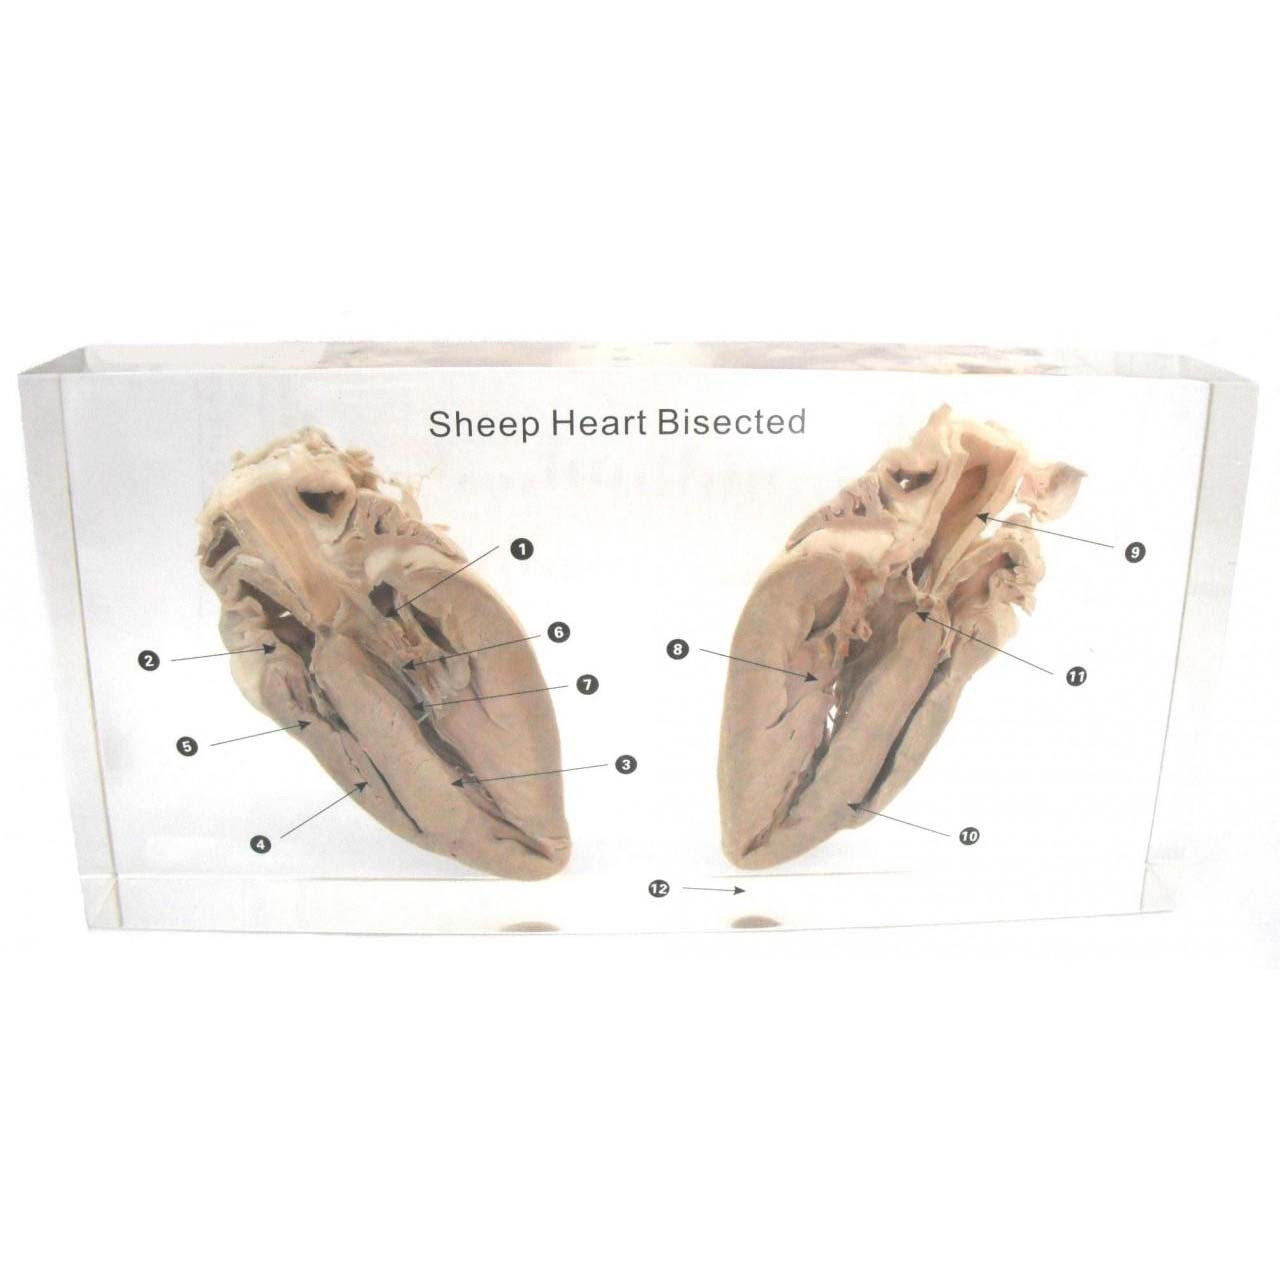 Sheep Heart Dissection Embedded Southern Biological